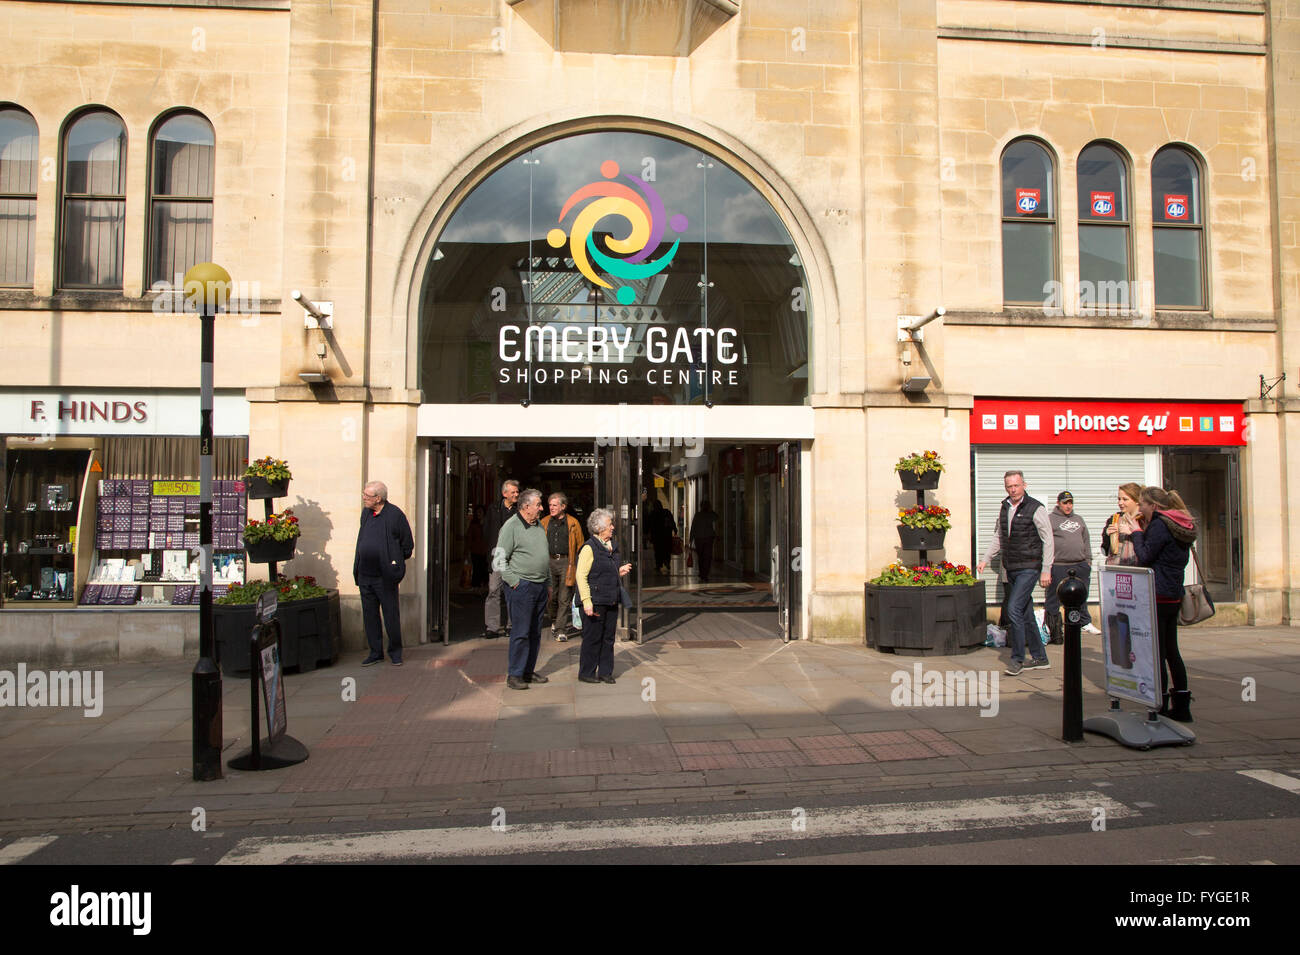 Emery Gate shopping centre in town  centre of Chippenham, Wiltshire, England, UK - Stock Image